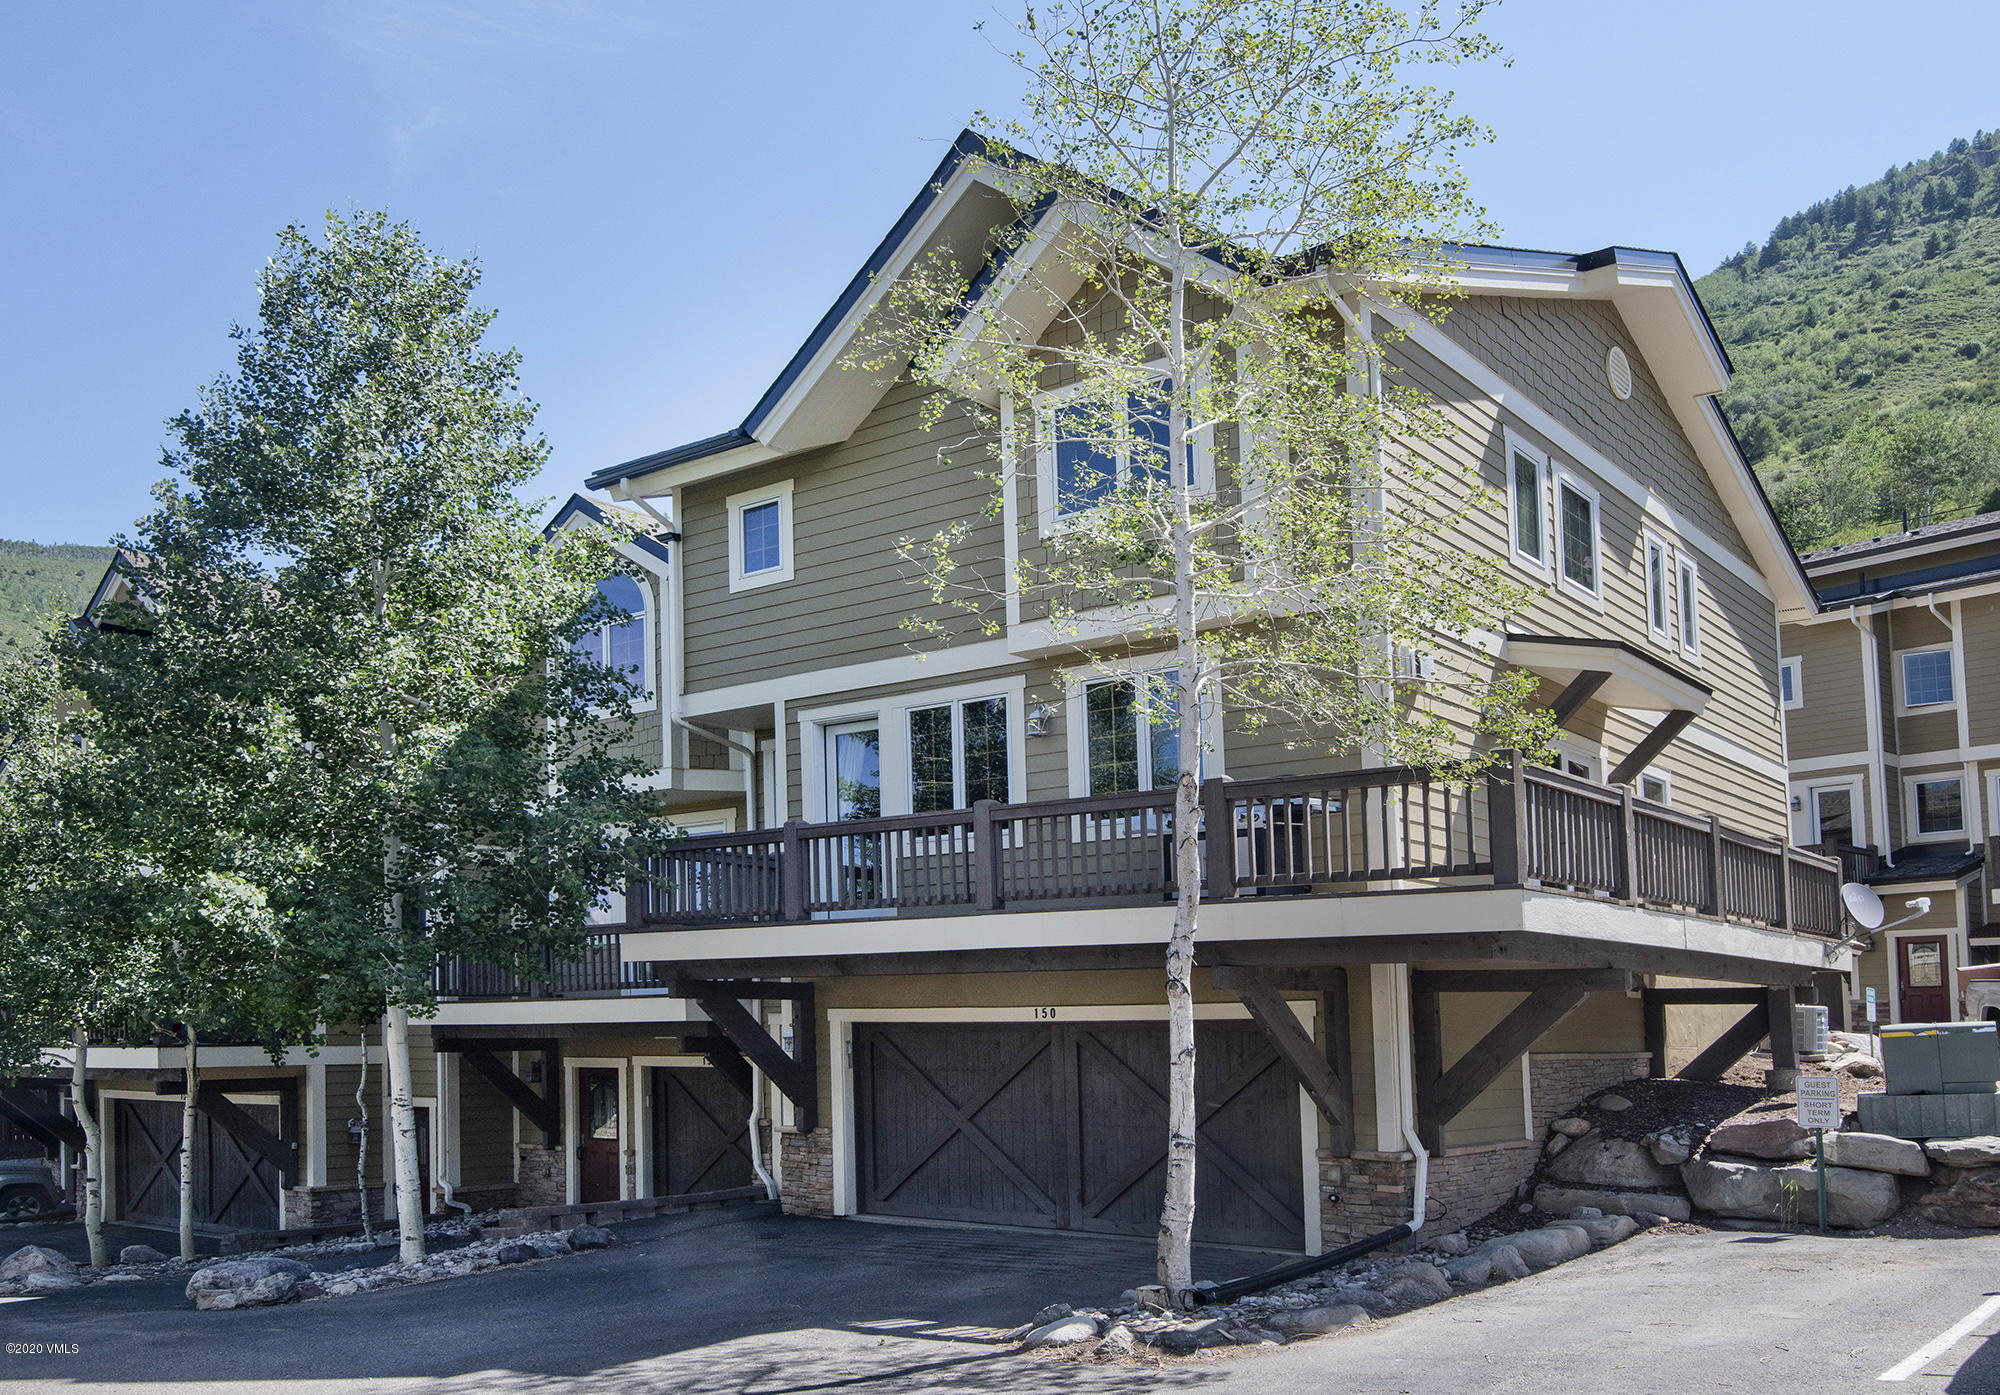 The perfect Minturn TH for which you have been searching has just come to the market!  The most-desired floor plan with all bedrooms on the same level, huge entertaining level complete with wrap-around deck, and a 2-CAR GARAGE!  Even bigger benefit is the lockable storage room in the back of the garage. Think...the BEST toy storage in all of Minturn TH!  Direct access to all the outdoor activities you keep saying you want to chase. Ski home via the Minturn Mile. Paddle The Chute. Hike Meadow Mountain. Flyfish the amazing Eagle River & Gore Creek. Tame Polly's Plunge on your mountain bike. Summit Holy Cross via the Halo Route. You can also stroll to the Turntable for unreal breakfast, the Saloon for epic apres, & the Minturn Market for unique goods. Your mountain landing pad!